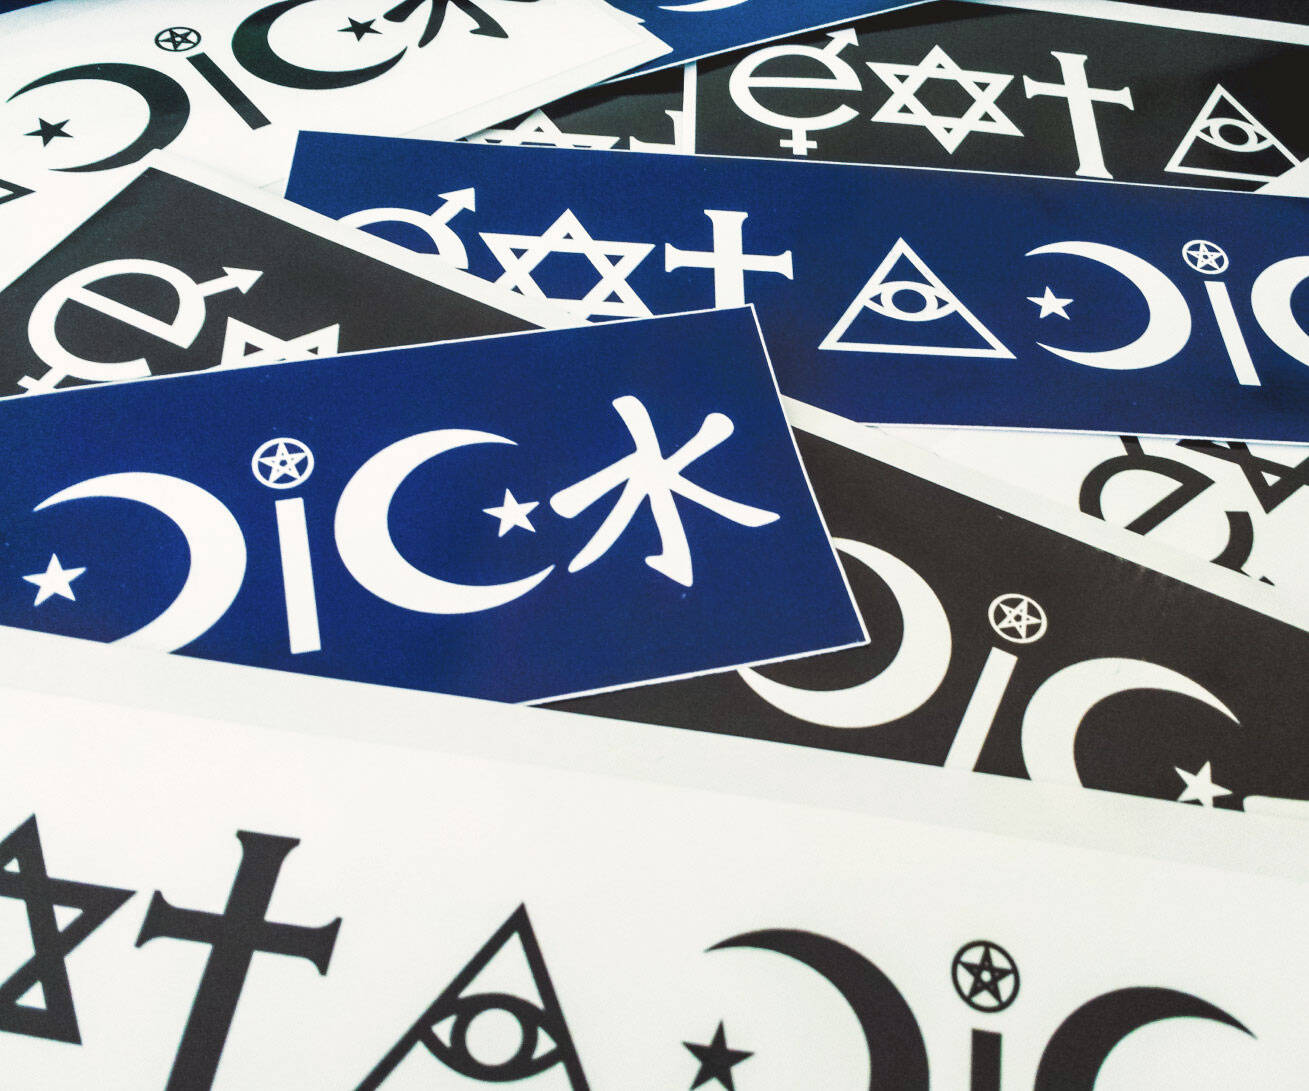 Eat A Dick Coexist Parody Bumper Sticker - http://coolthings.us